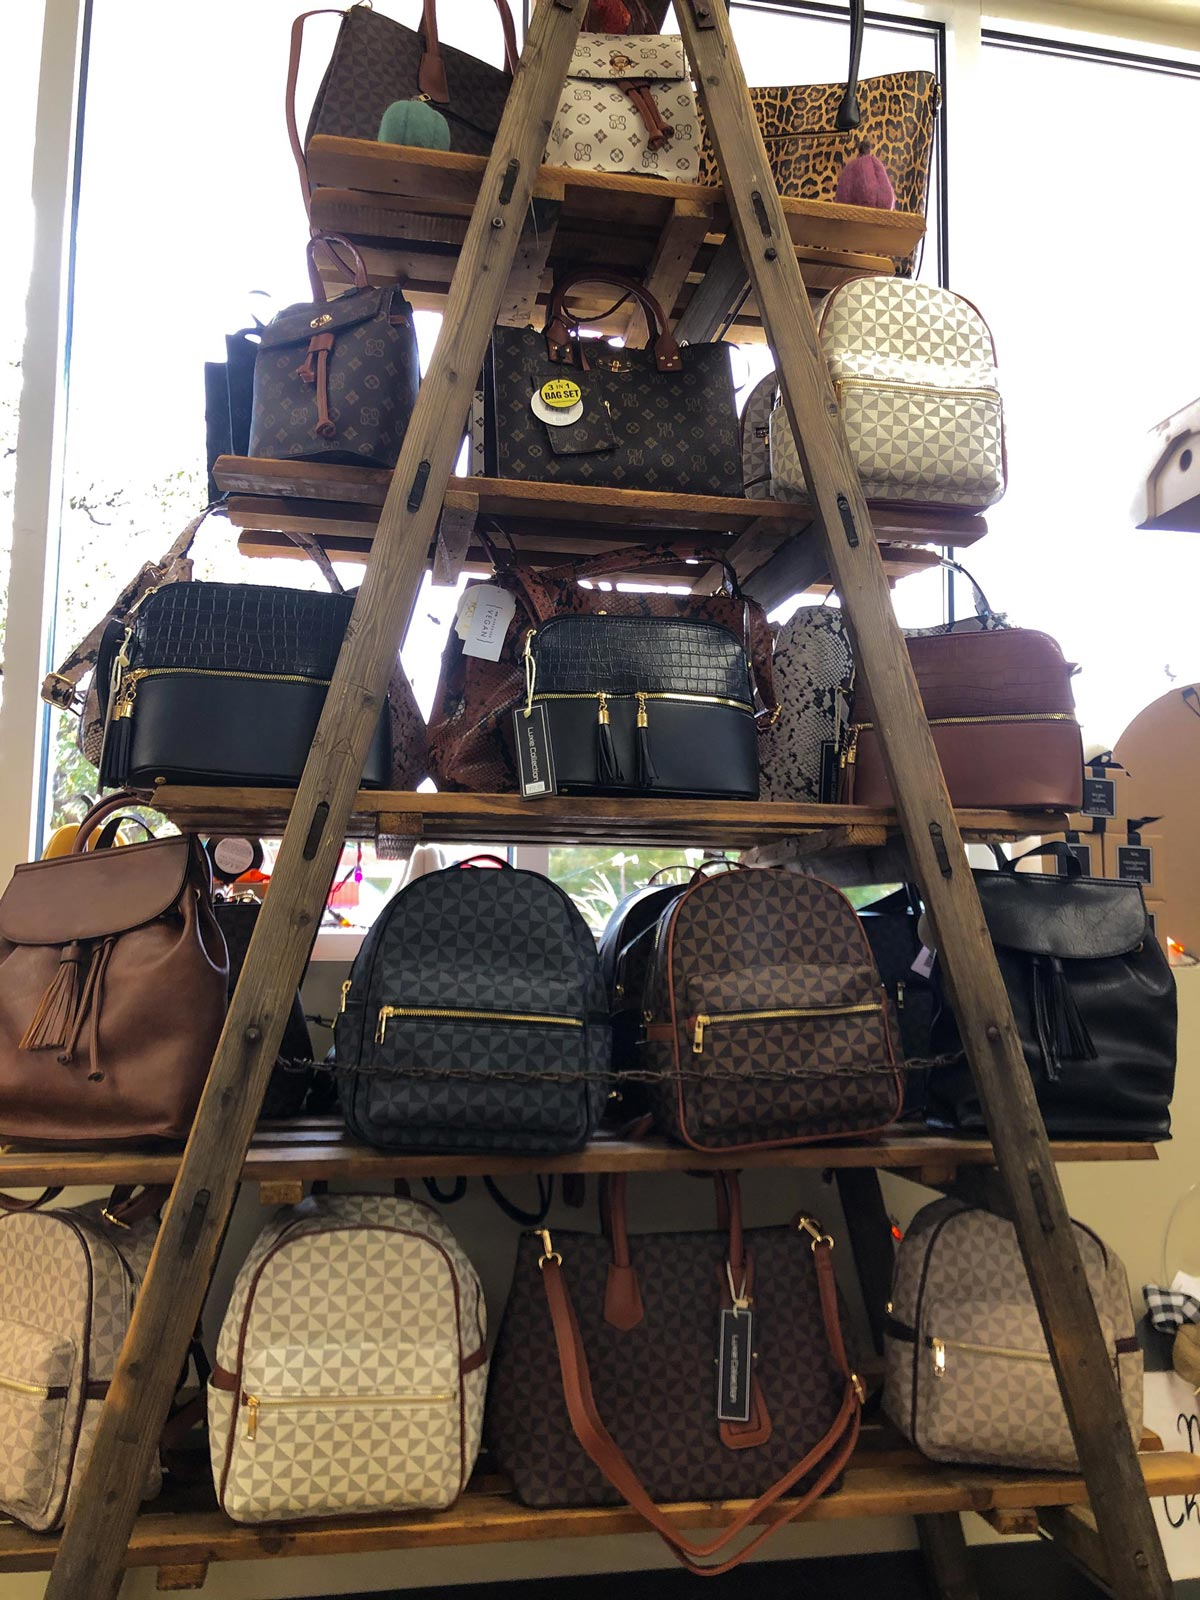 Shelf of different style purses